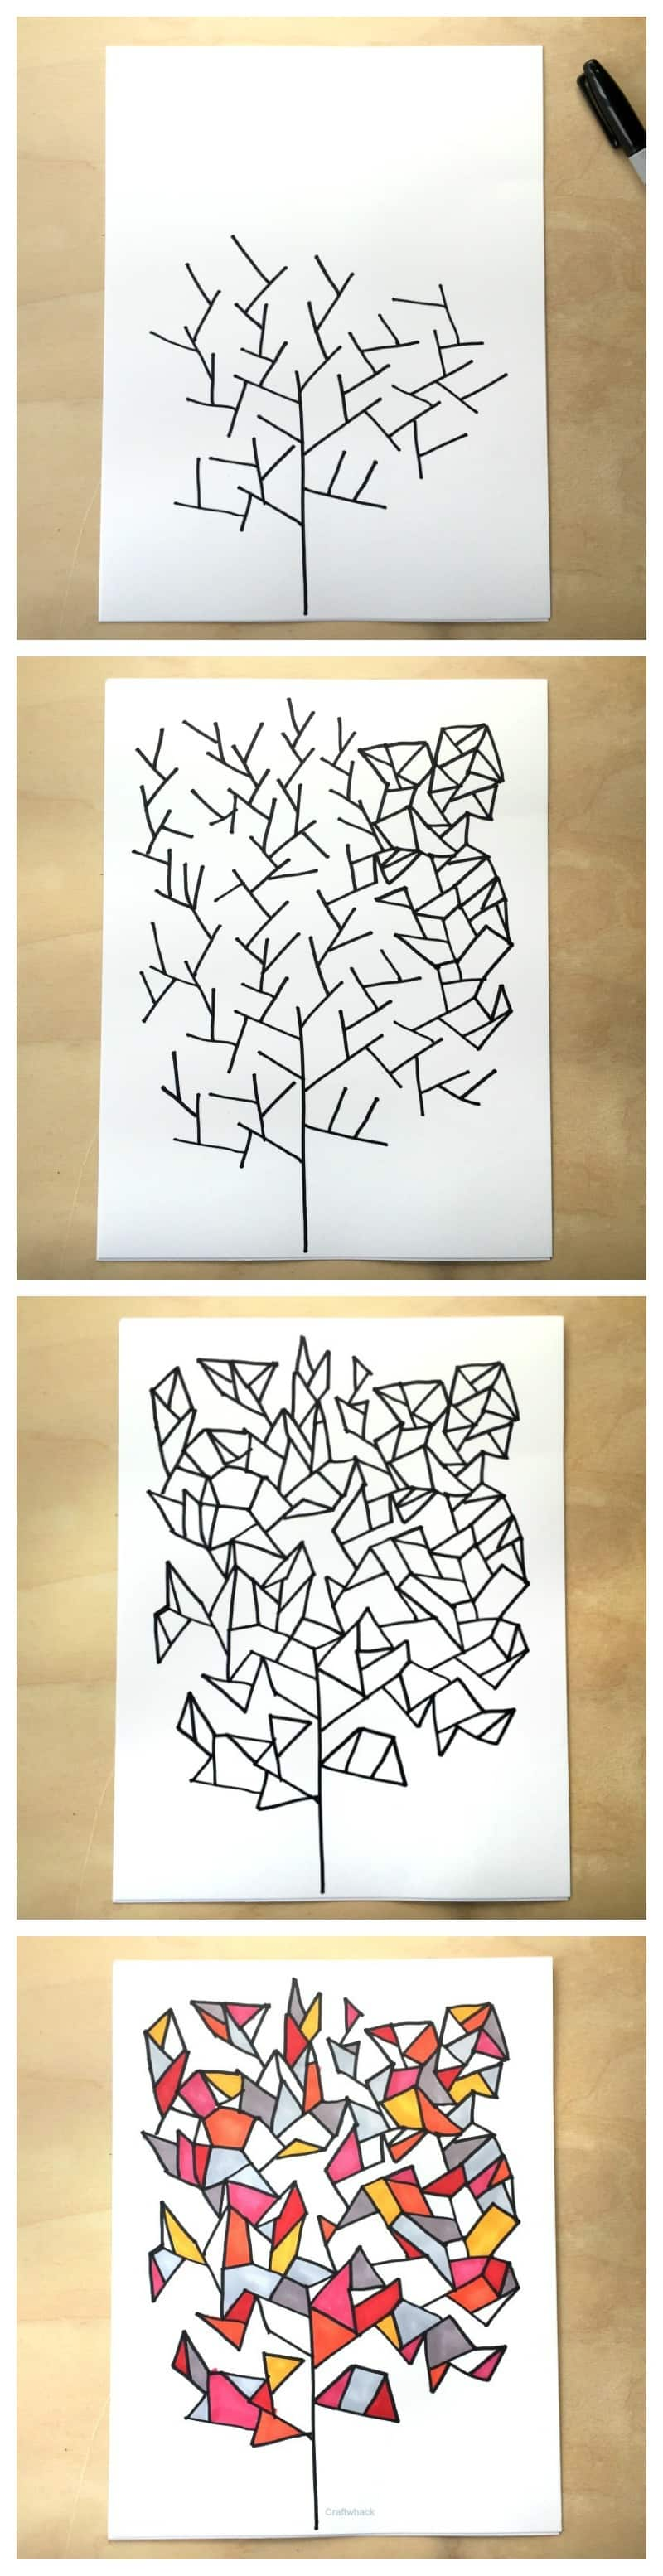 From My Book 1 Simple Drawing Game Craftwhack